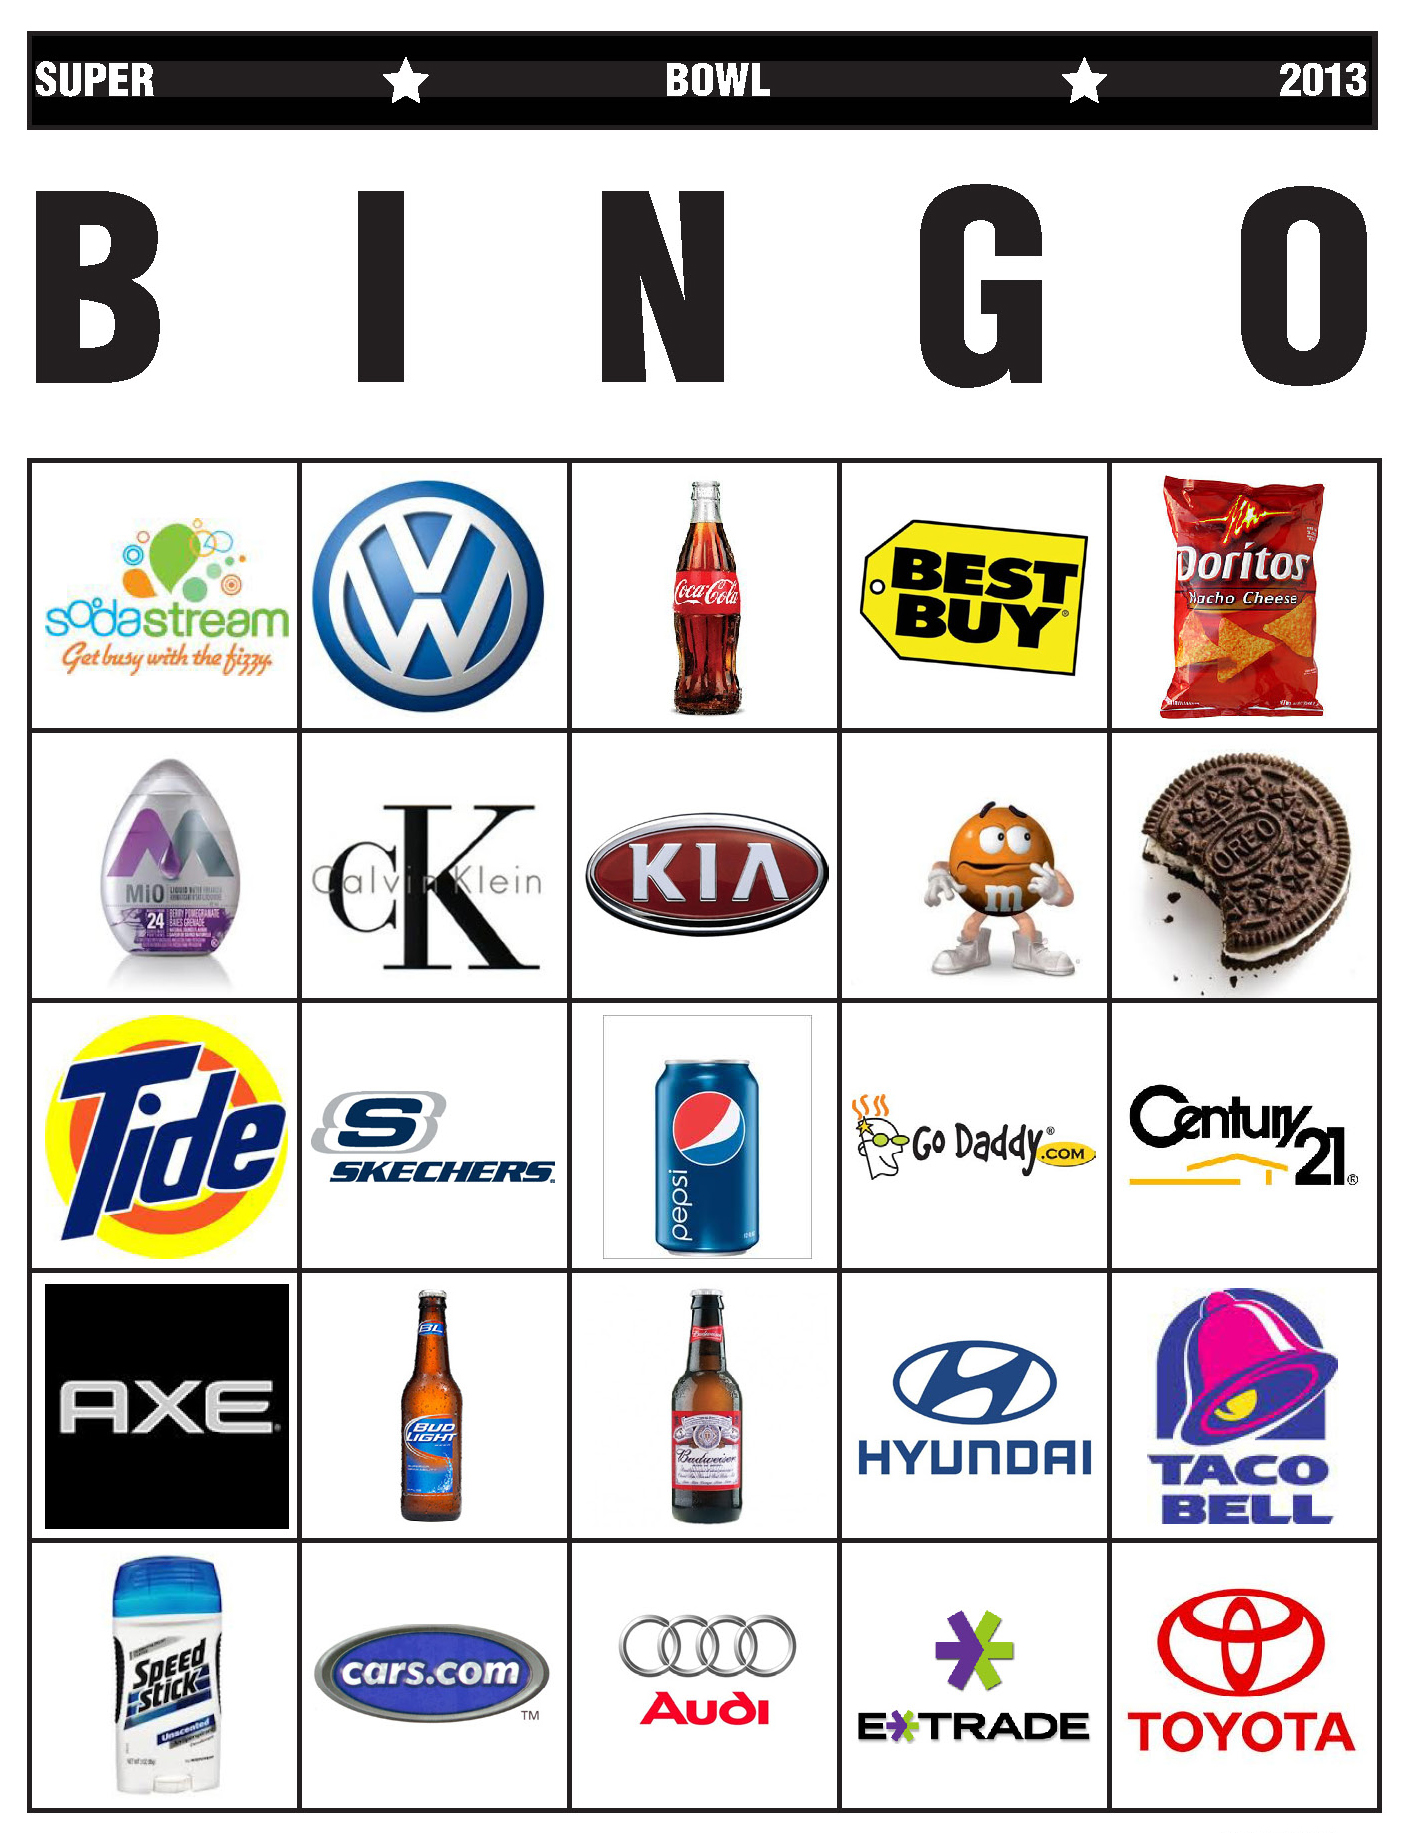 photo about Printable Super Bowl Bingo Cards referred to as Tremendous Bowl Bingo, 2013 Version Calamity Jennie